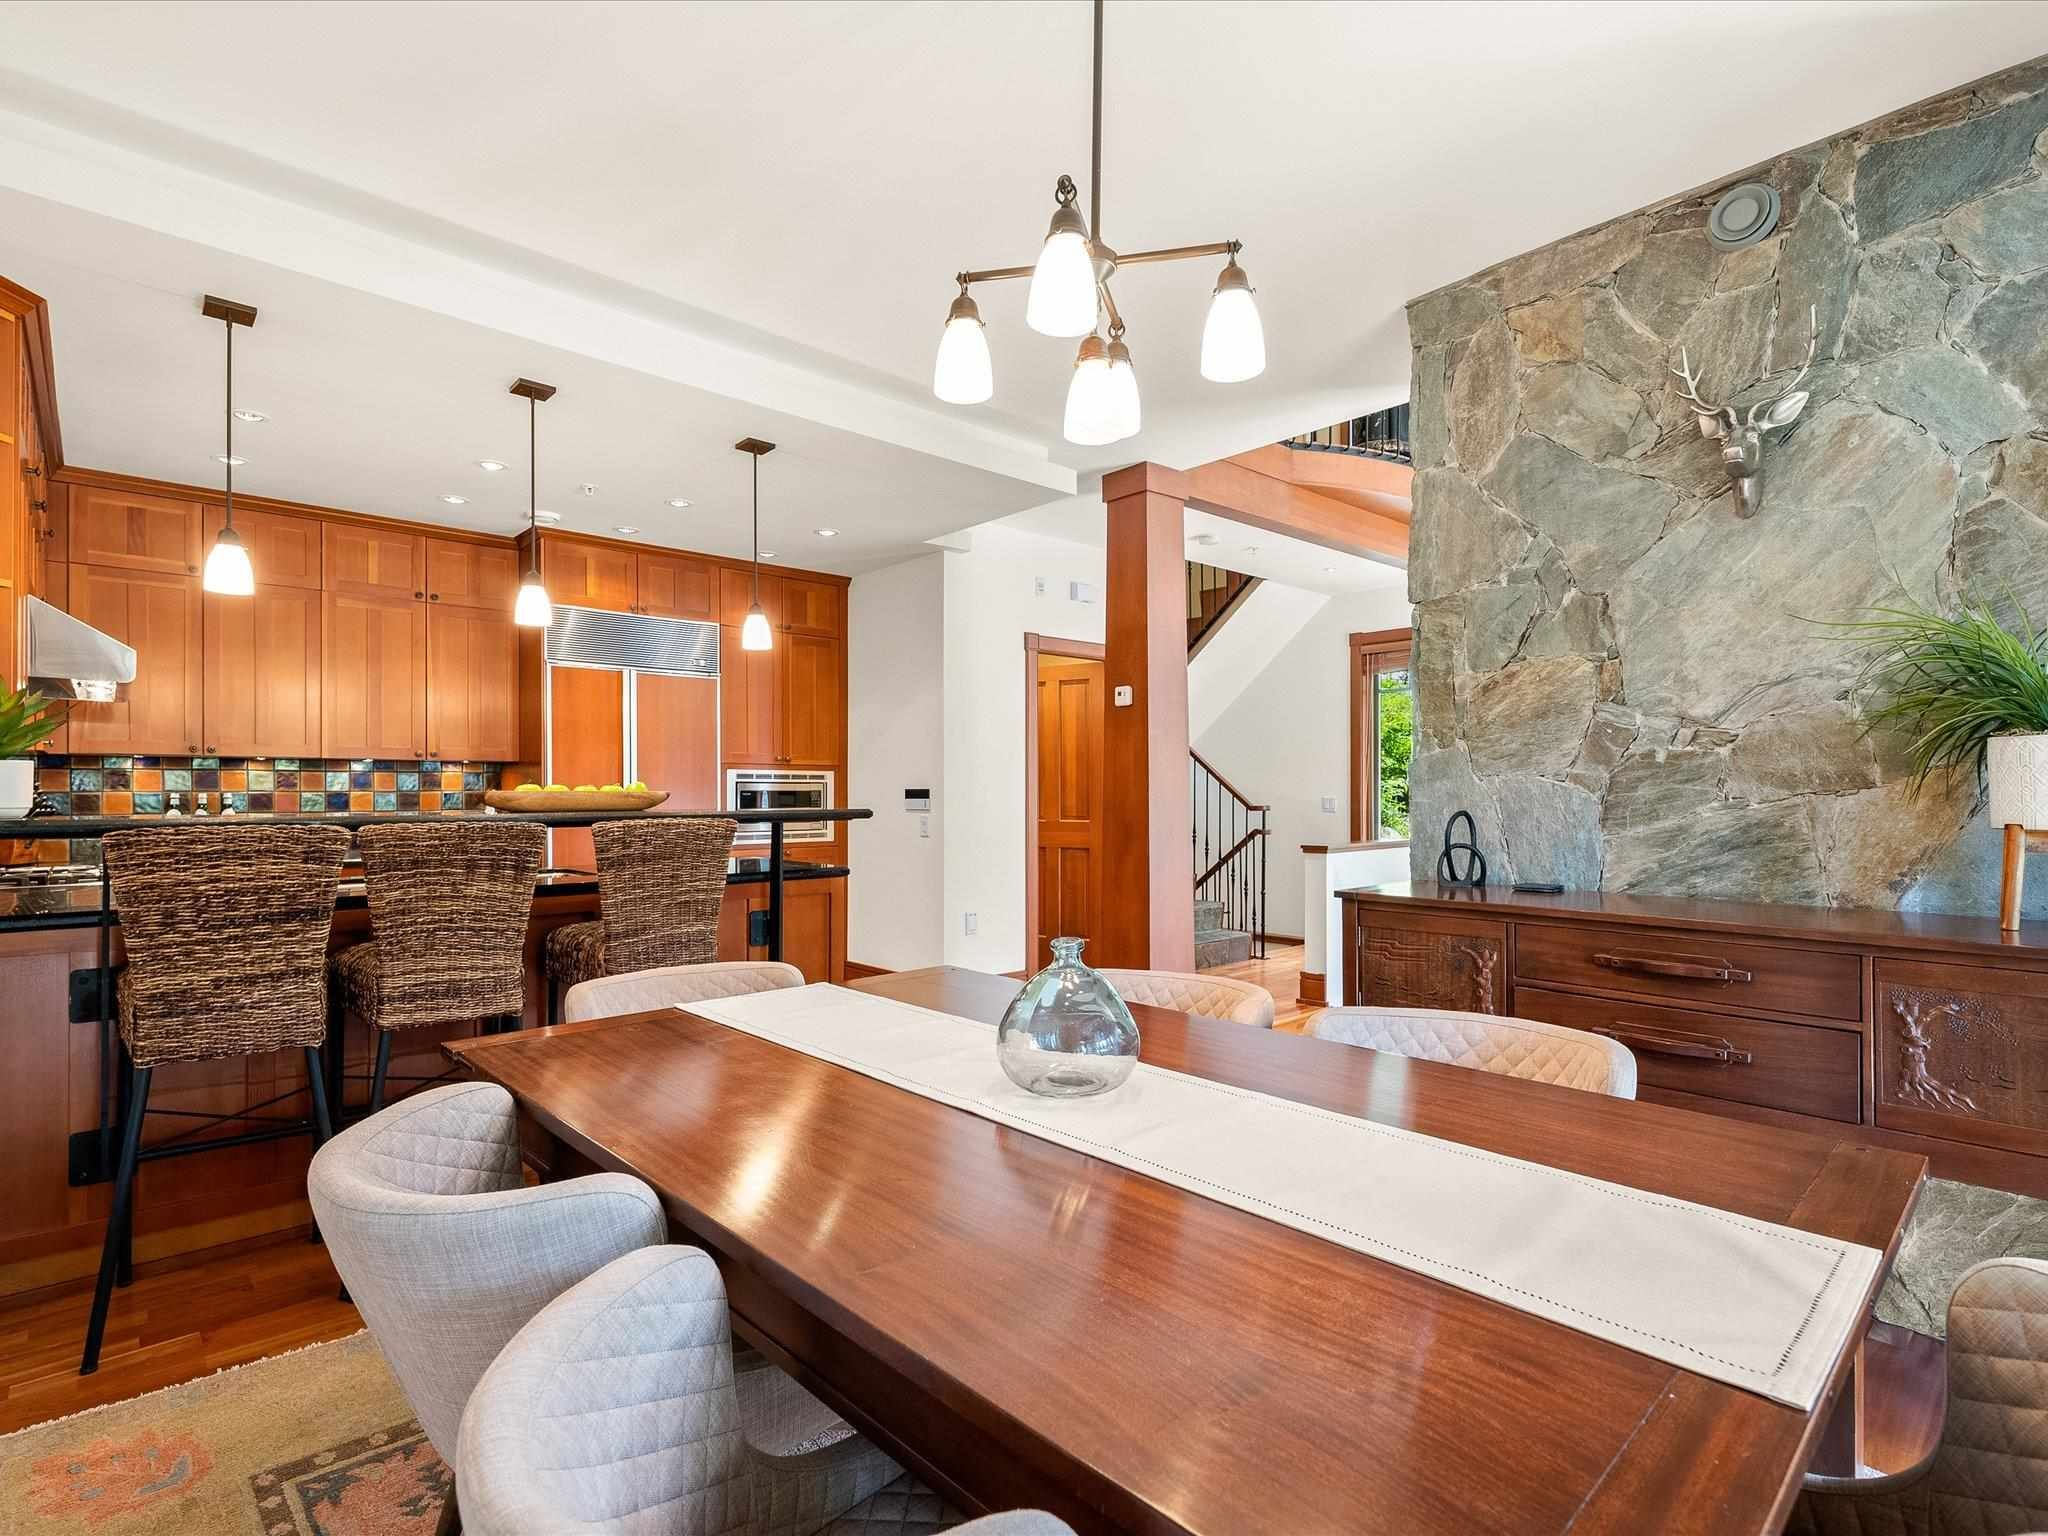 Photo 5: Photos: 4 2500 TALUSWOOD PLACE in Whistler: Nordic Townhouse for sale : MLS®# R2593995